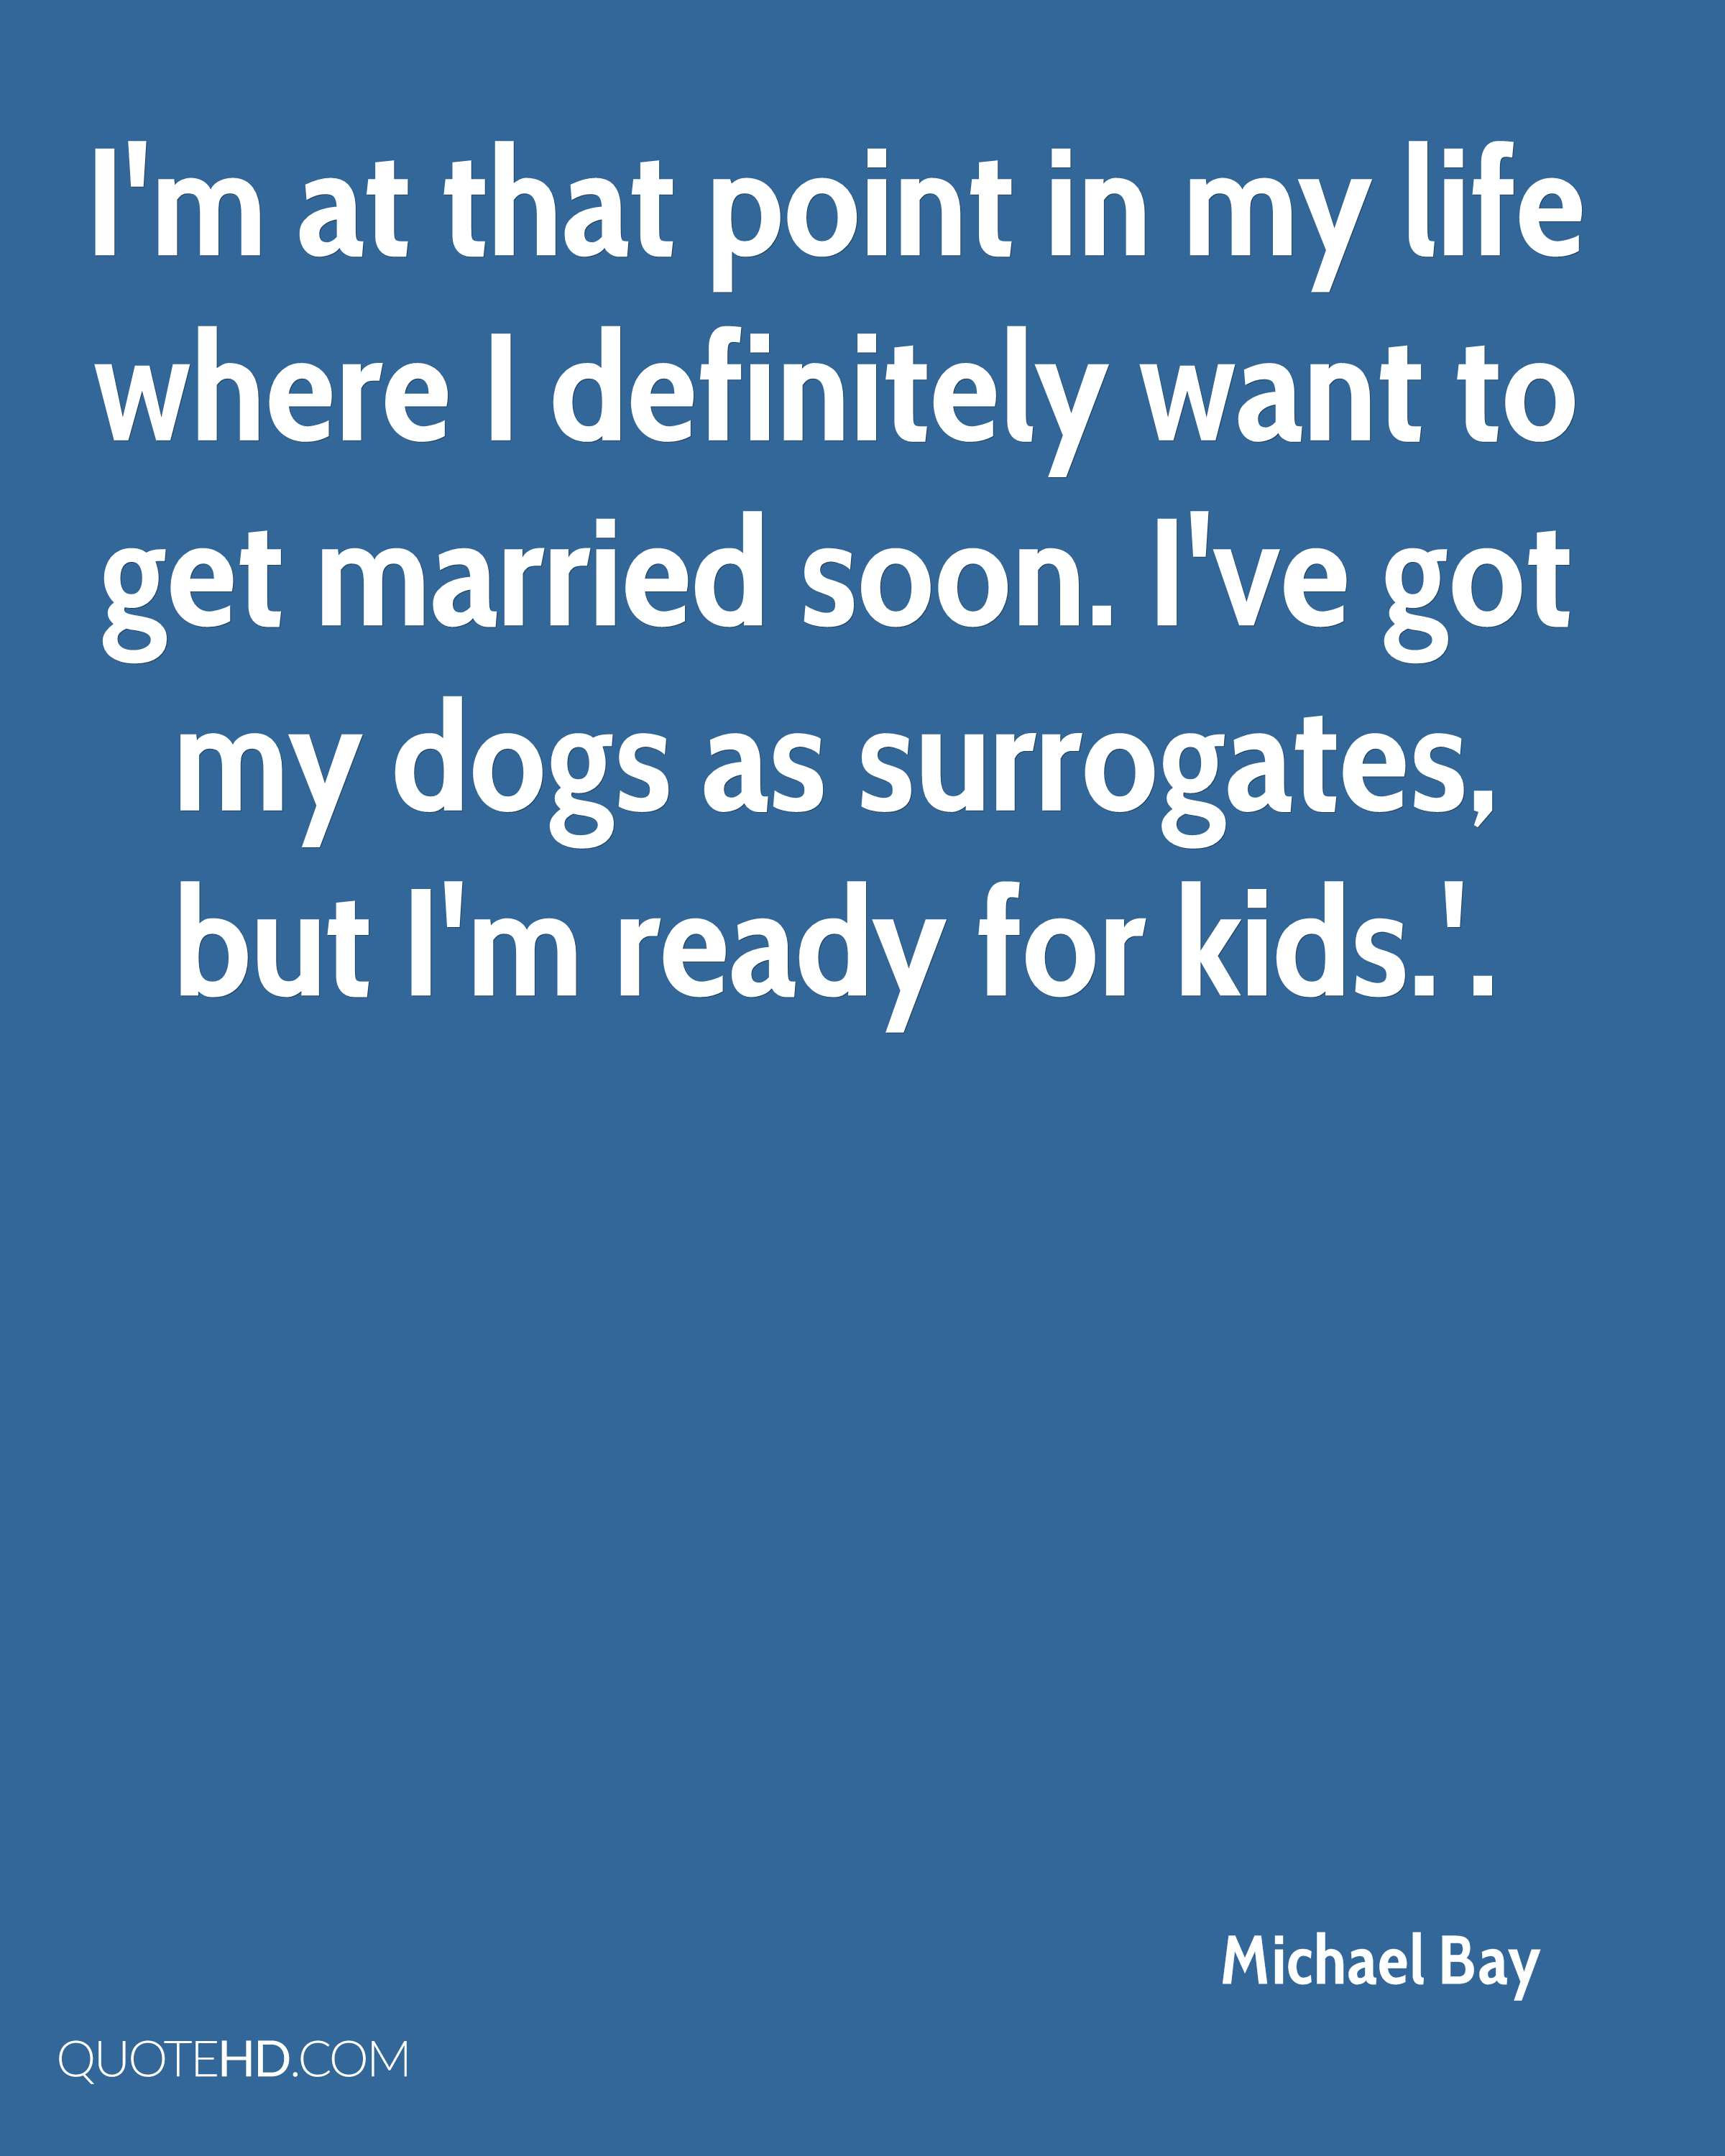 Michael Bay Marriage Quotes Quotehd